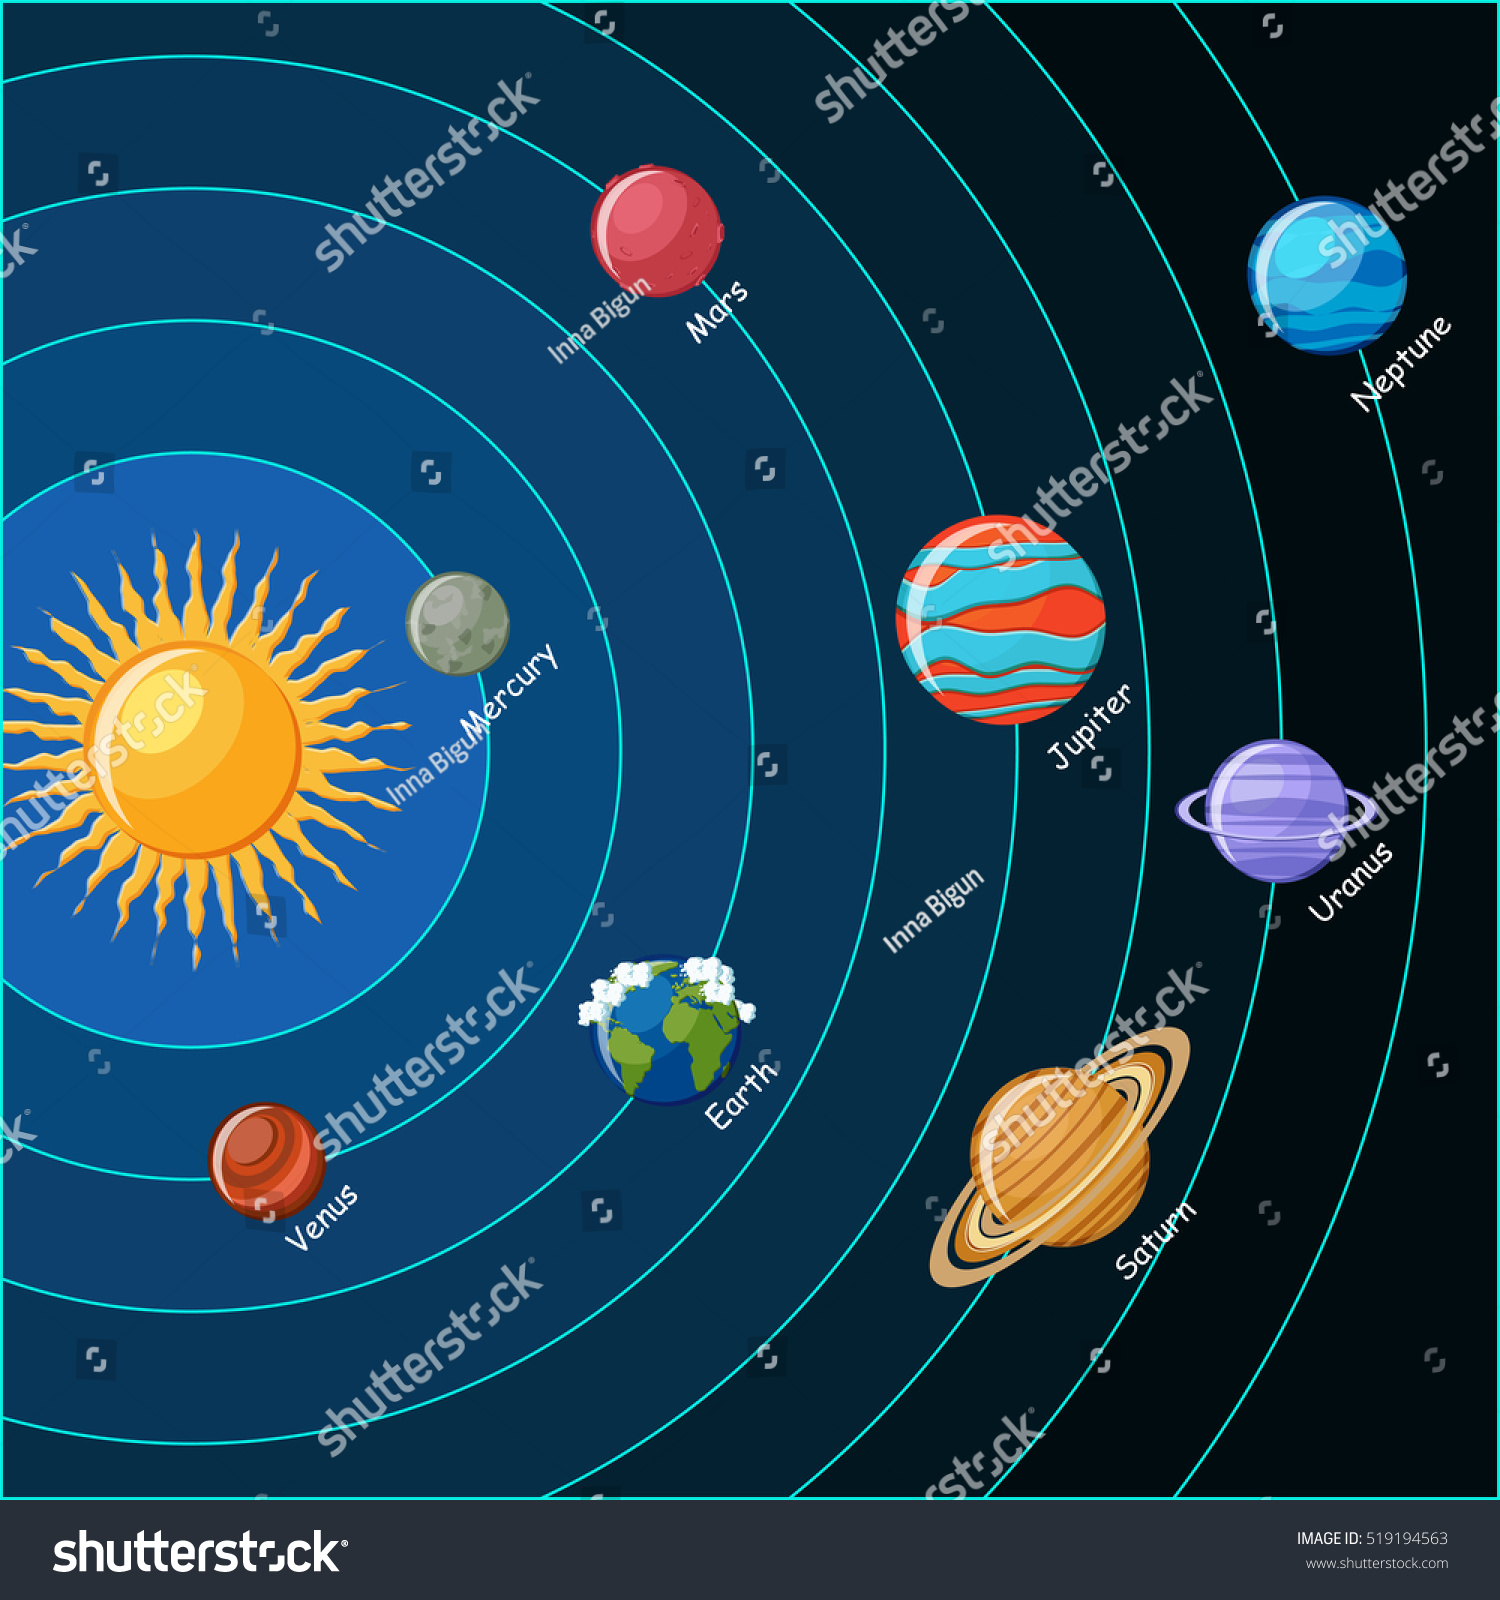 solar system discovery education - photo #39